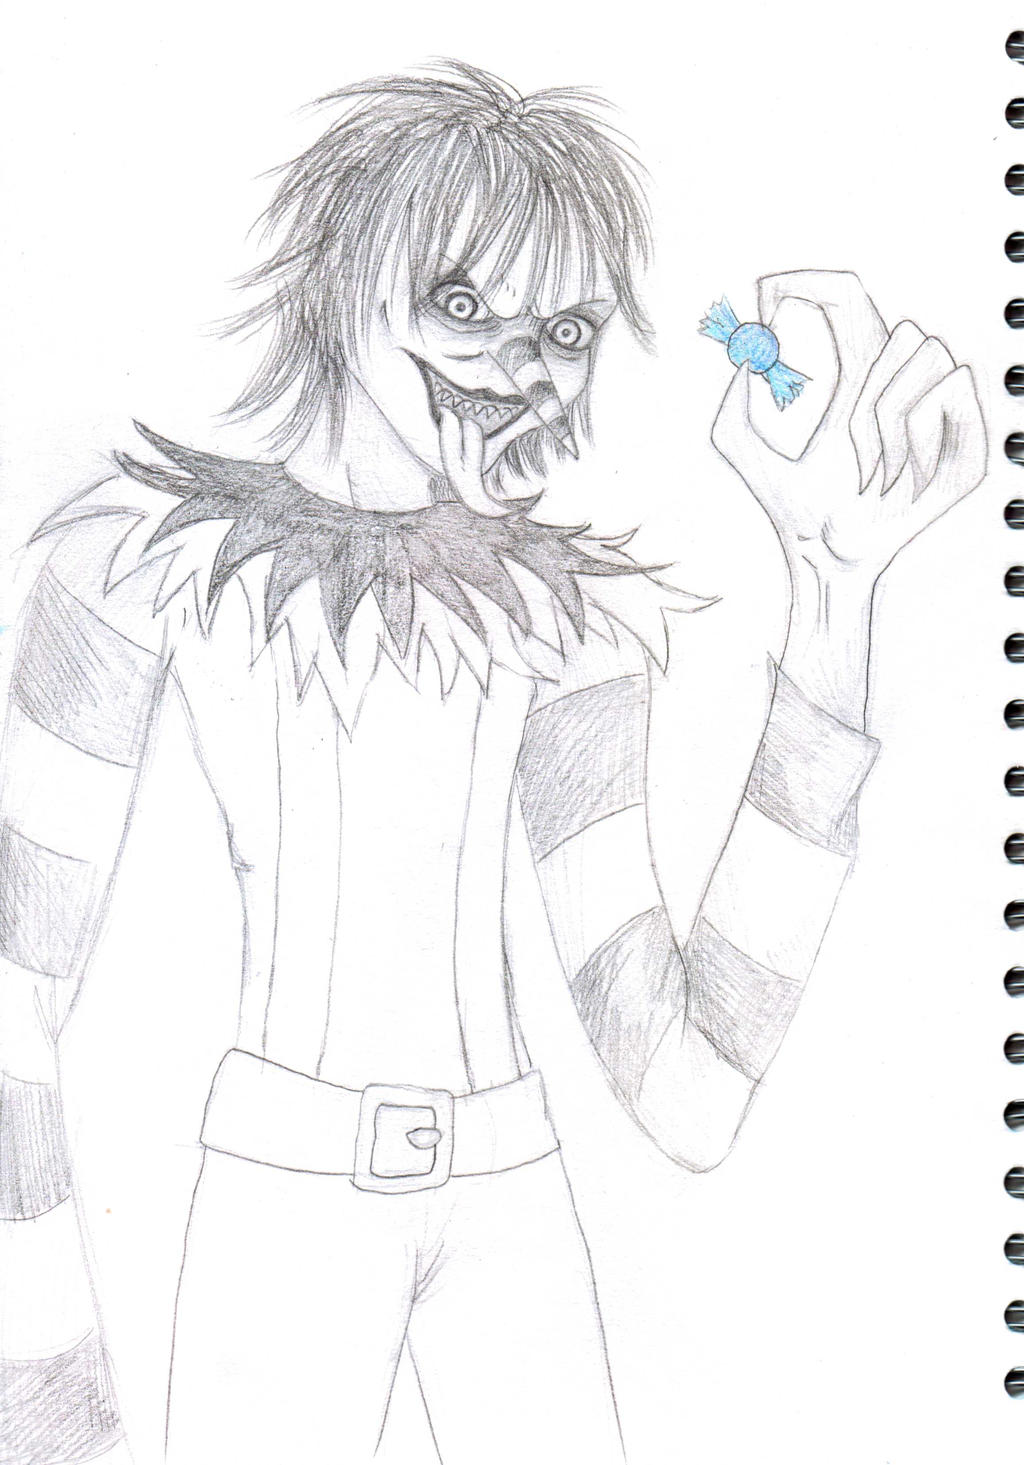 Laughing Jack Doodle by izzynoodles on DeviantArt